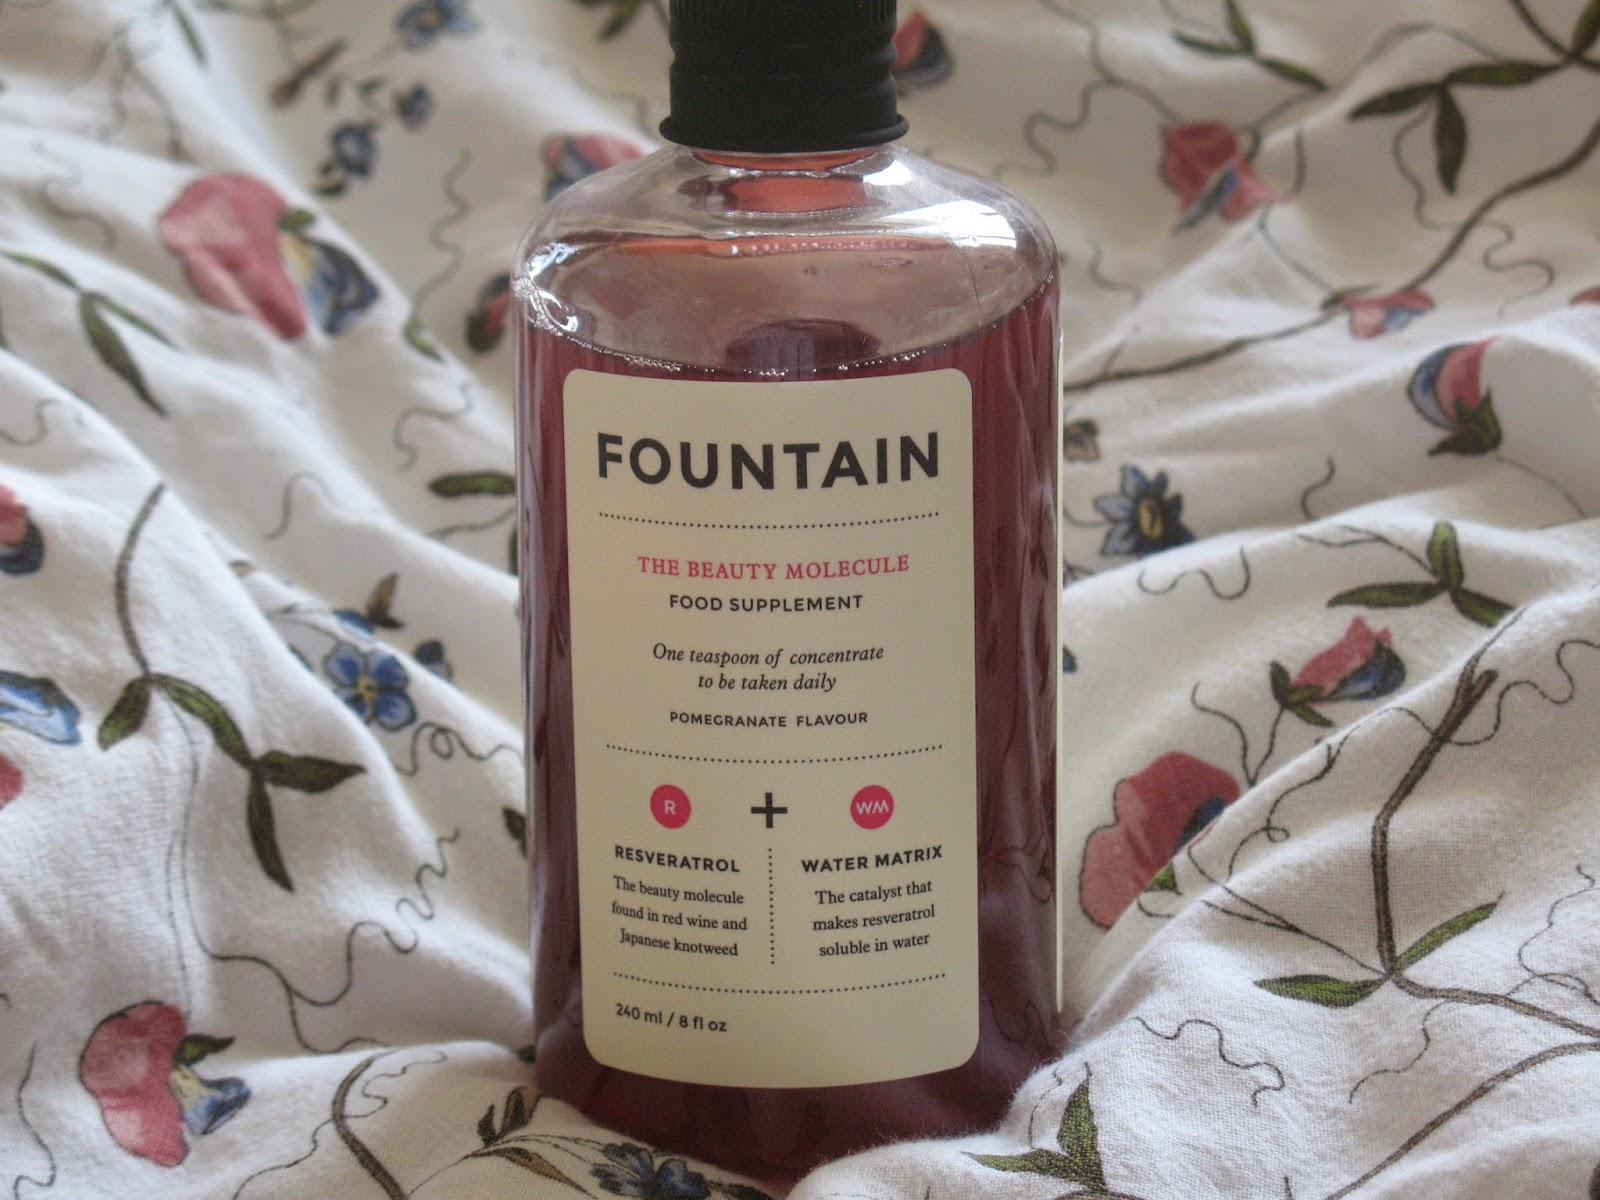 Fountain Beauty Molecule Food Supplement